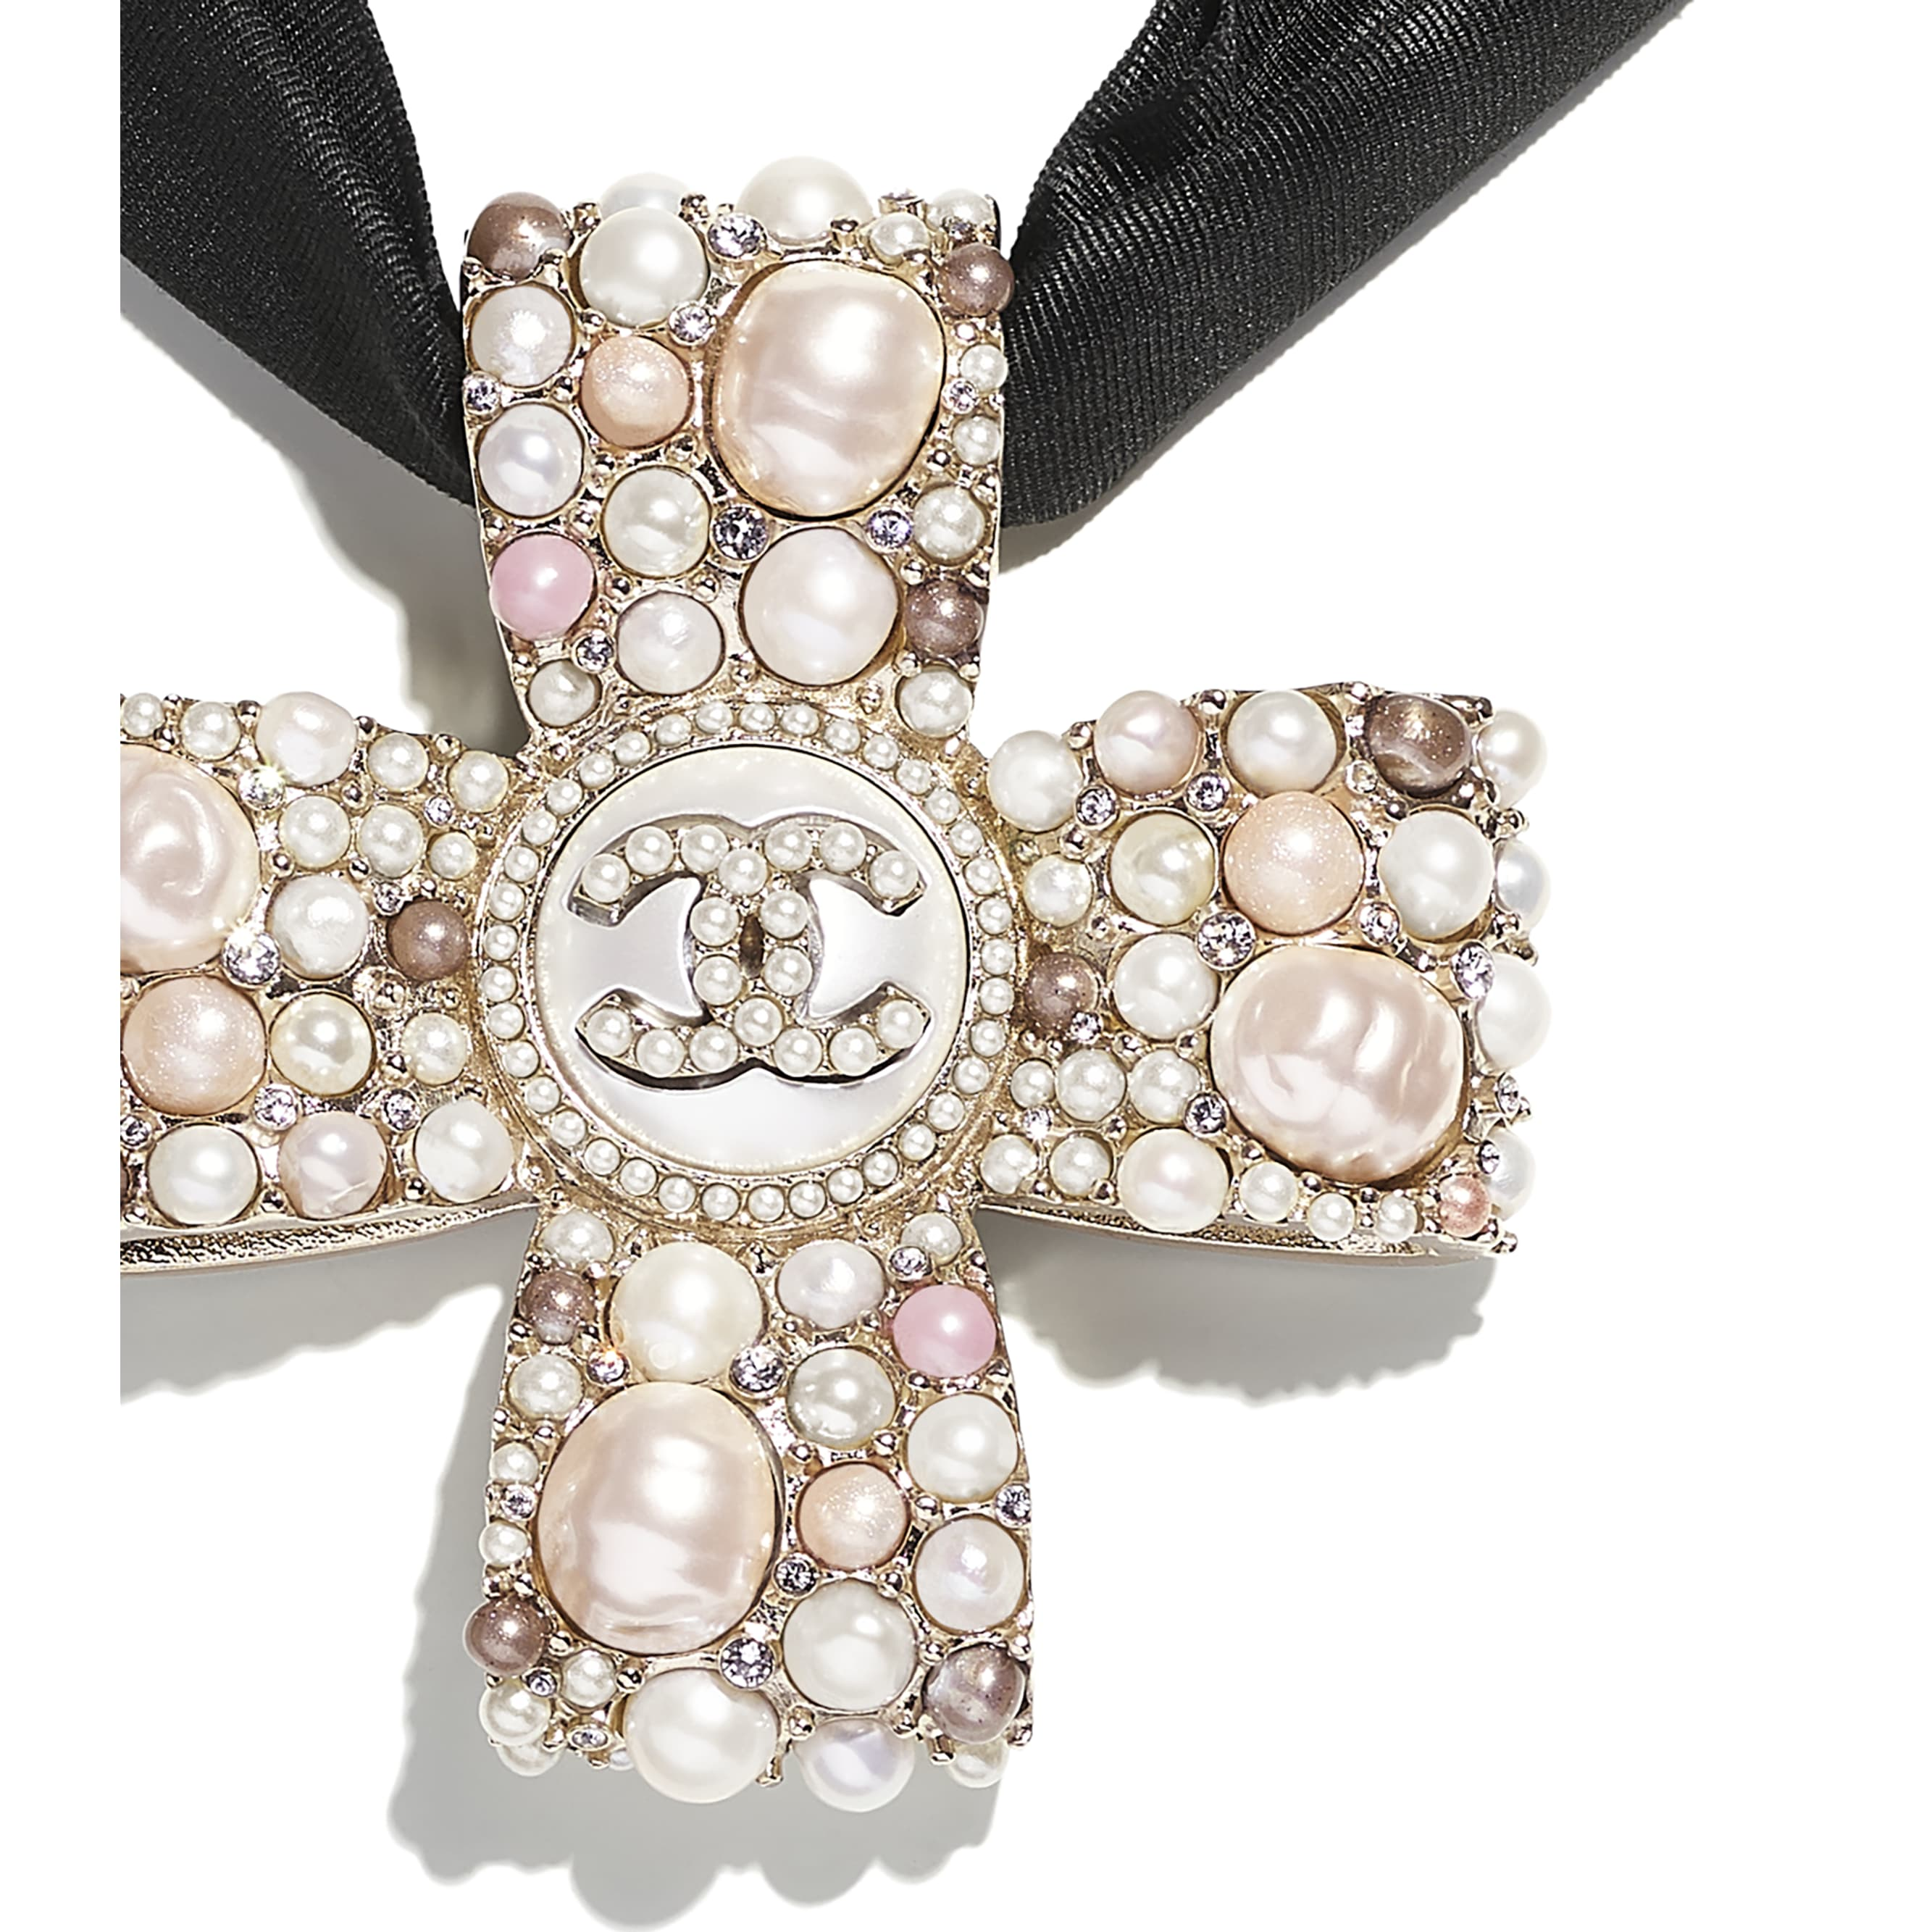 Colar - Gold, Pearly White, Pink, Crystal & Black - Metal, Cultured Freshwater Pearls, Glass Pearls, Imitation Pearls, Strass & Silk - CHANEL - Outra vista - ver a versão em tamanho standard